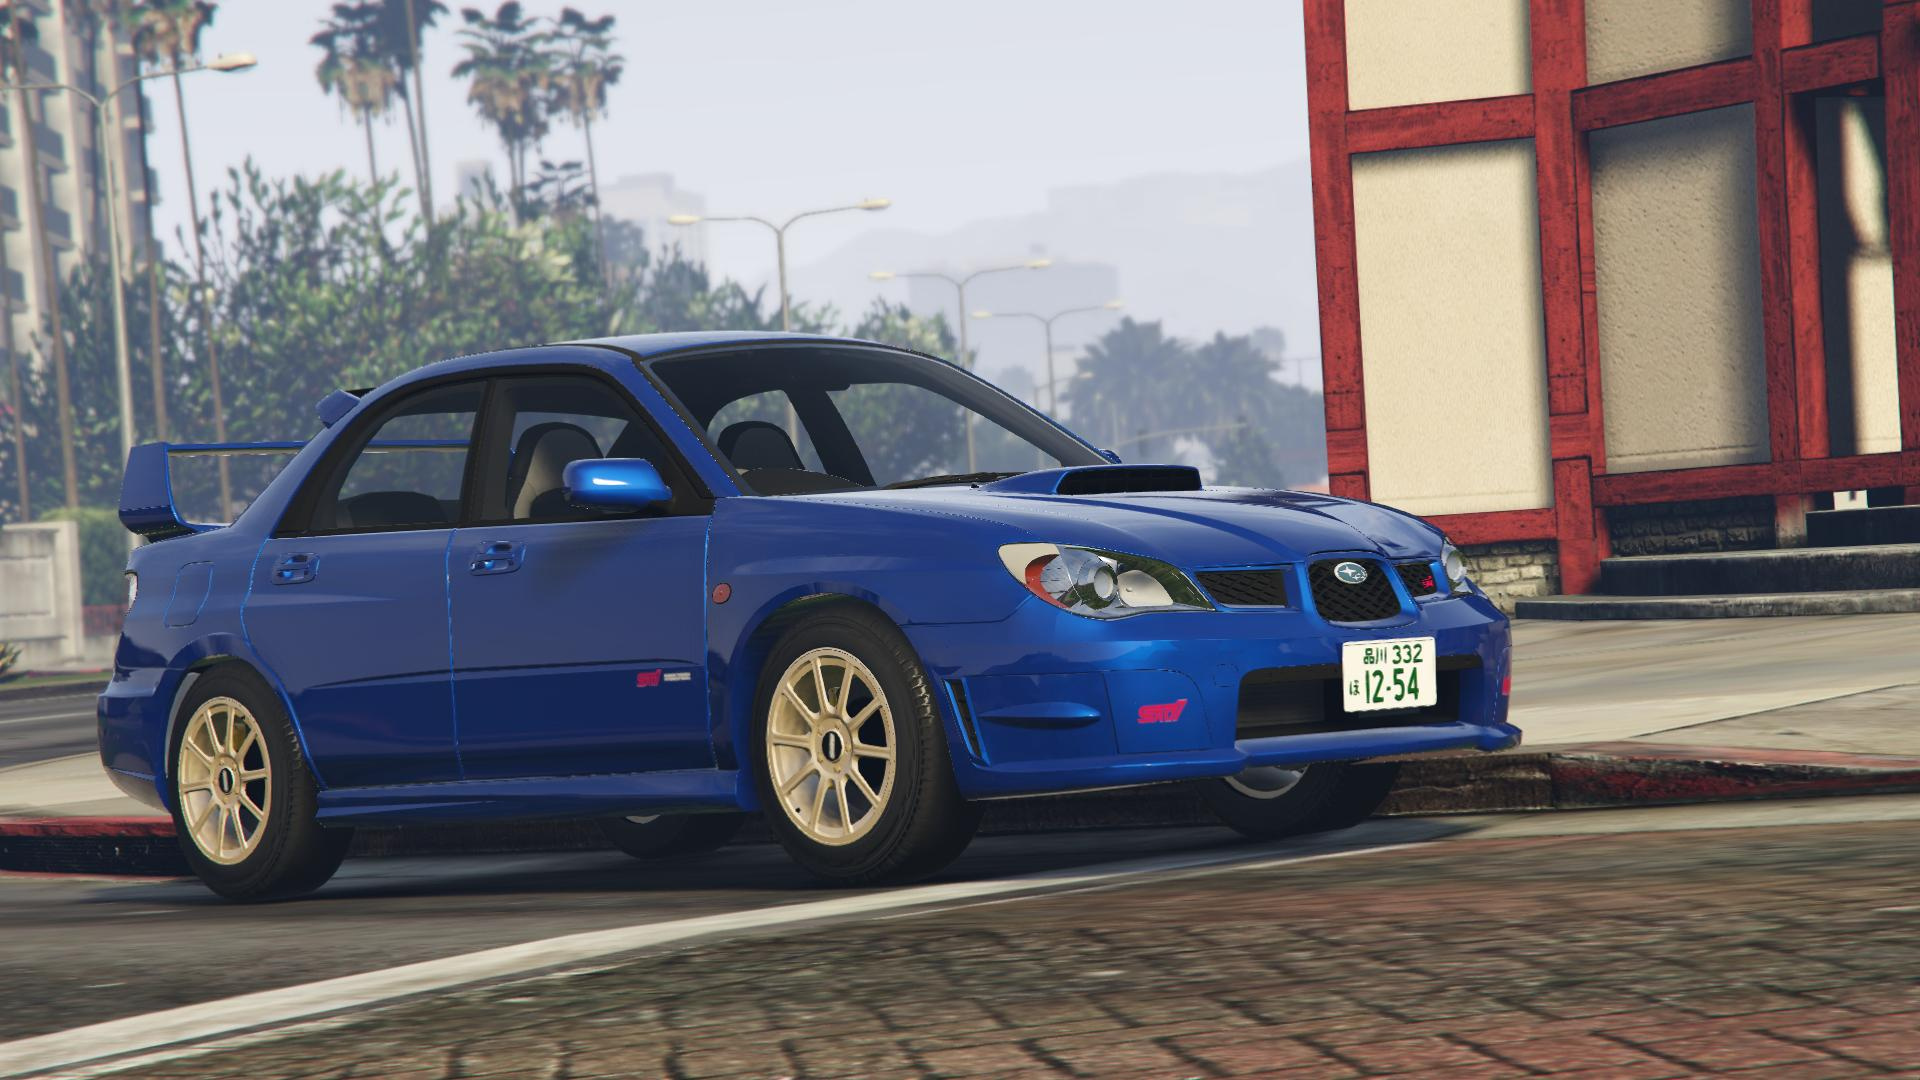 2006 subaru impreza wrx sti add on rhd tuning gta5. Black Bedroom Furniture Sets. Home Design Ideas